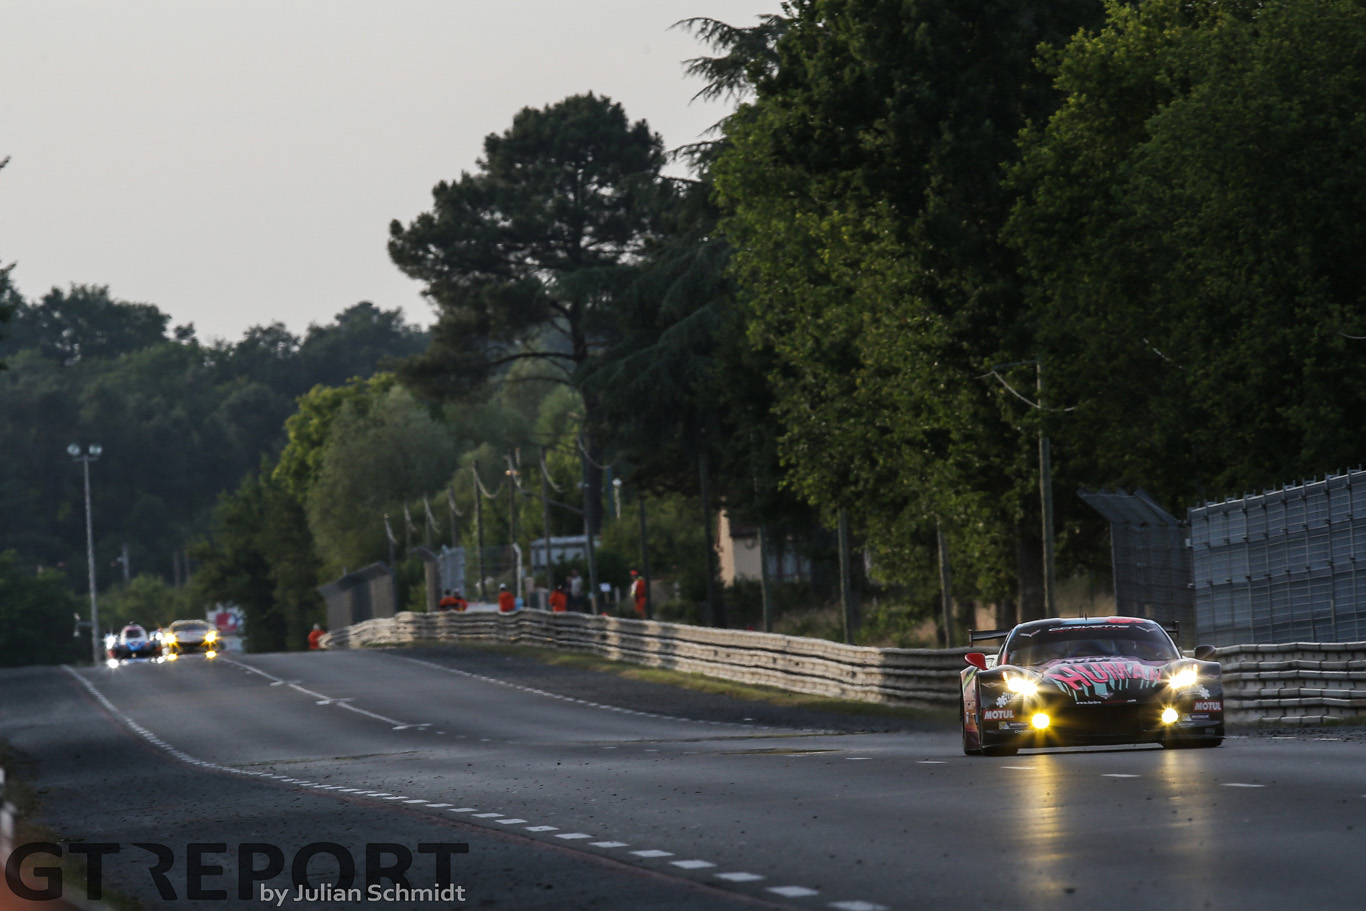 Le Mans 24 Hours live blog